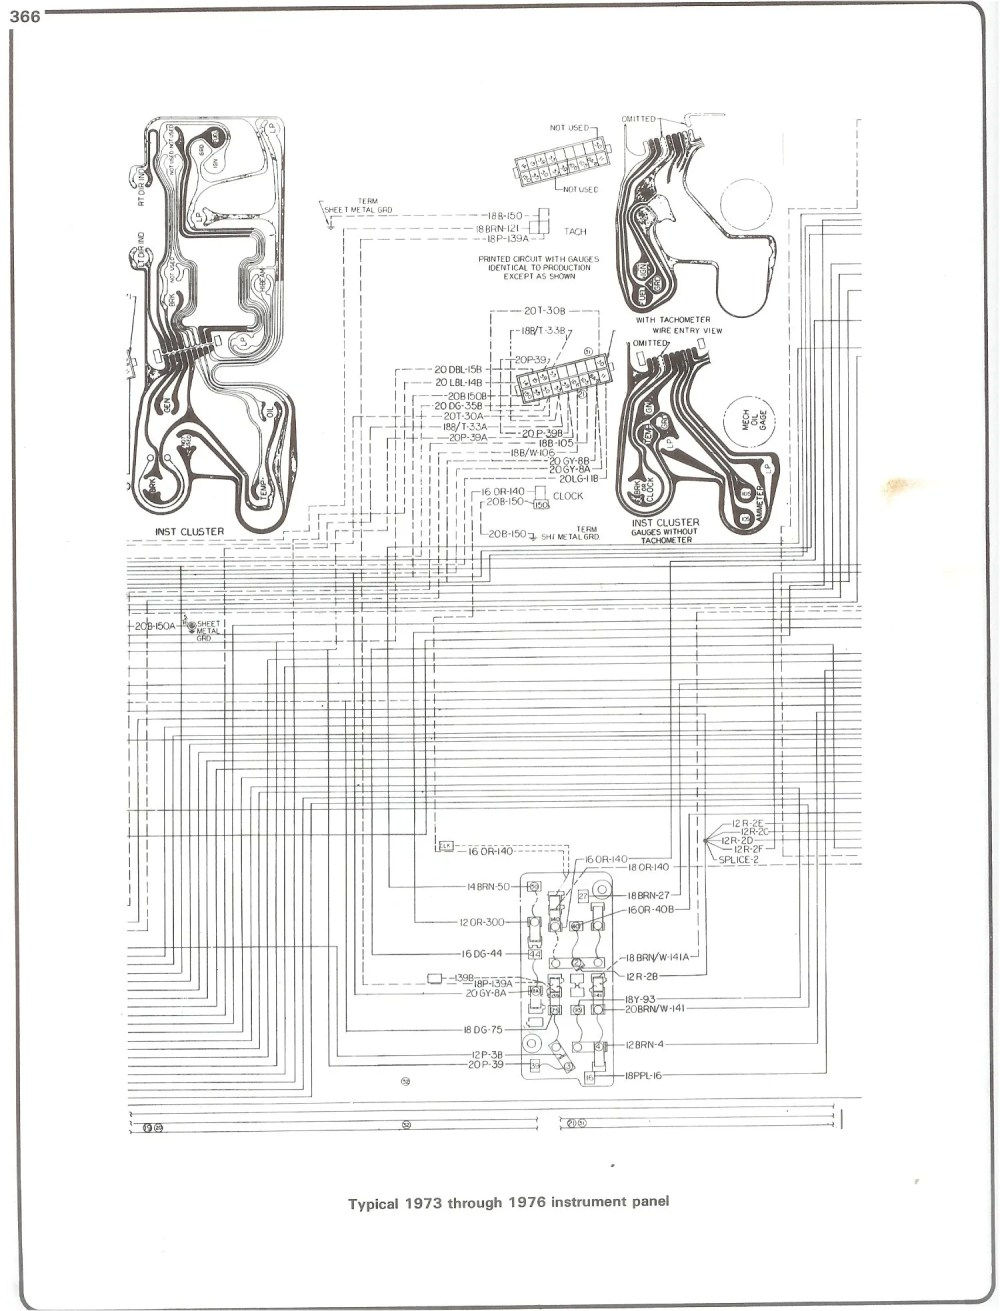 medium resolution of plete 73 87 wiring diagrams 1989 chevy cavalier wiring diagram 20 chevy cavalier wiring harnes diagram